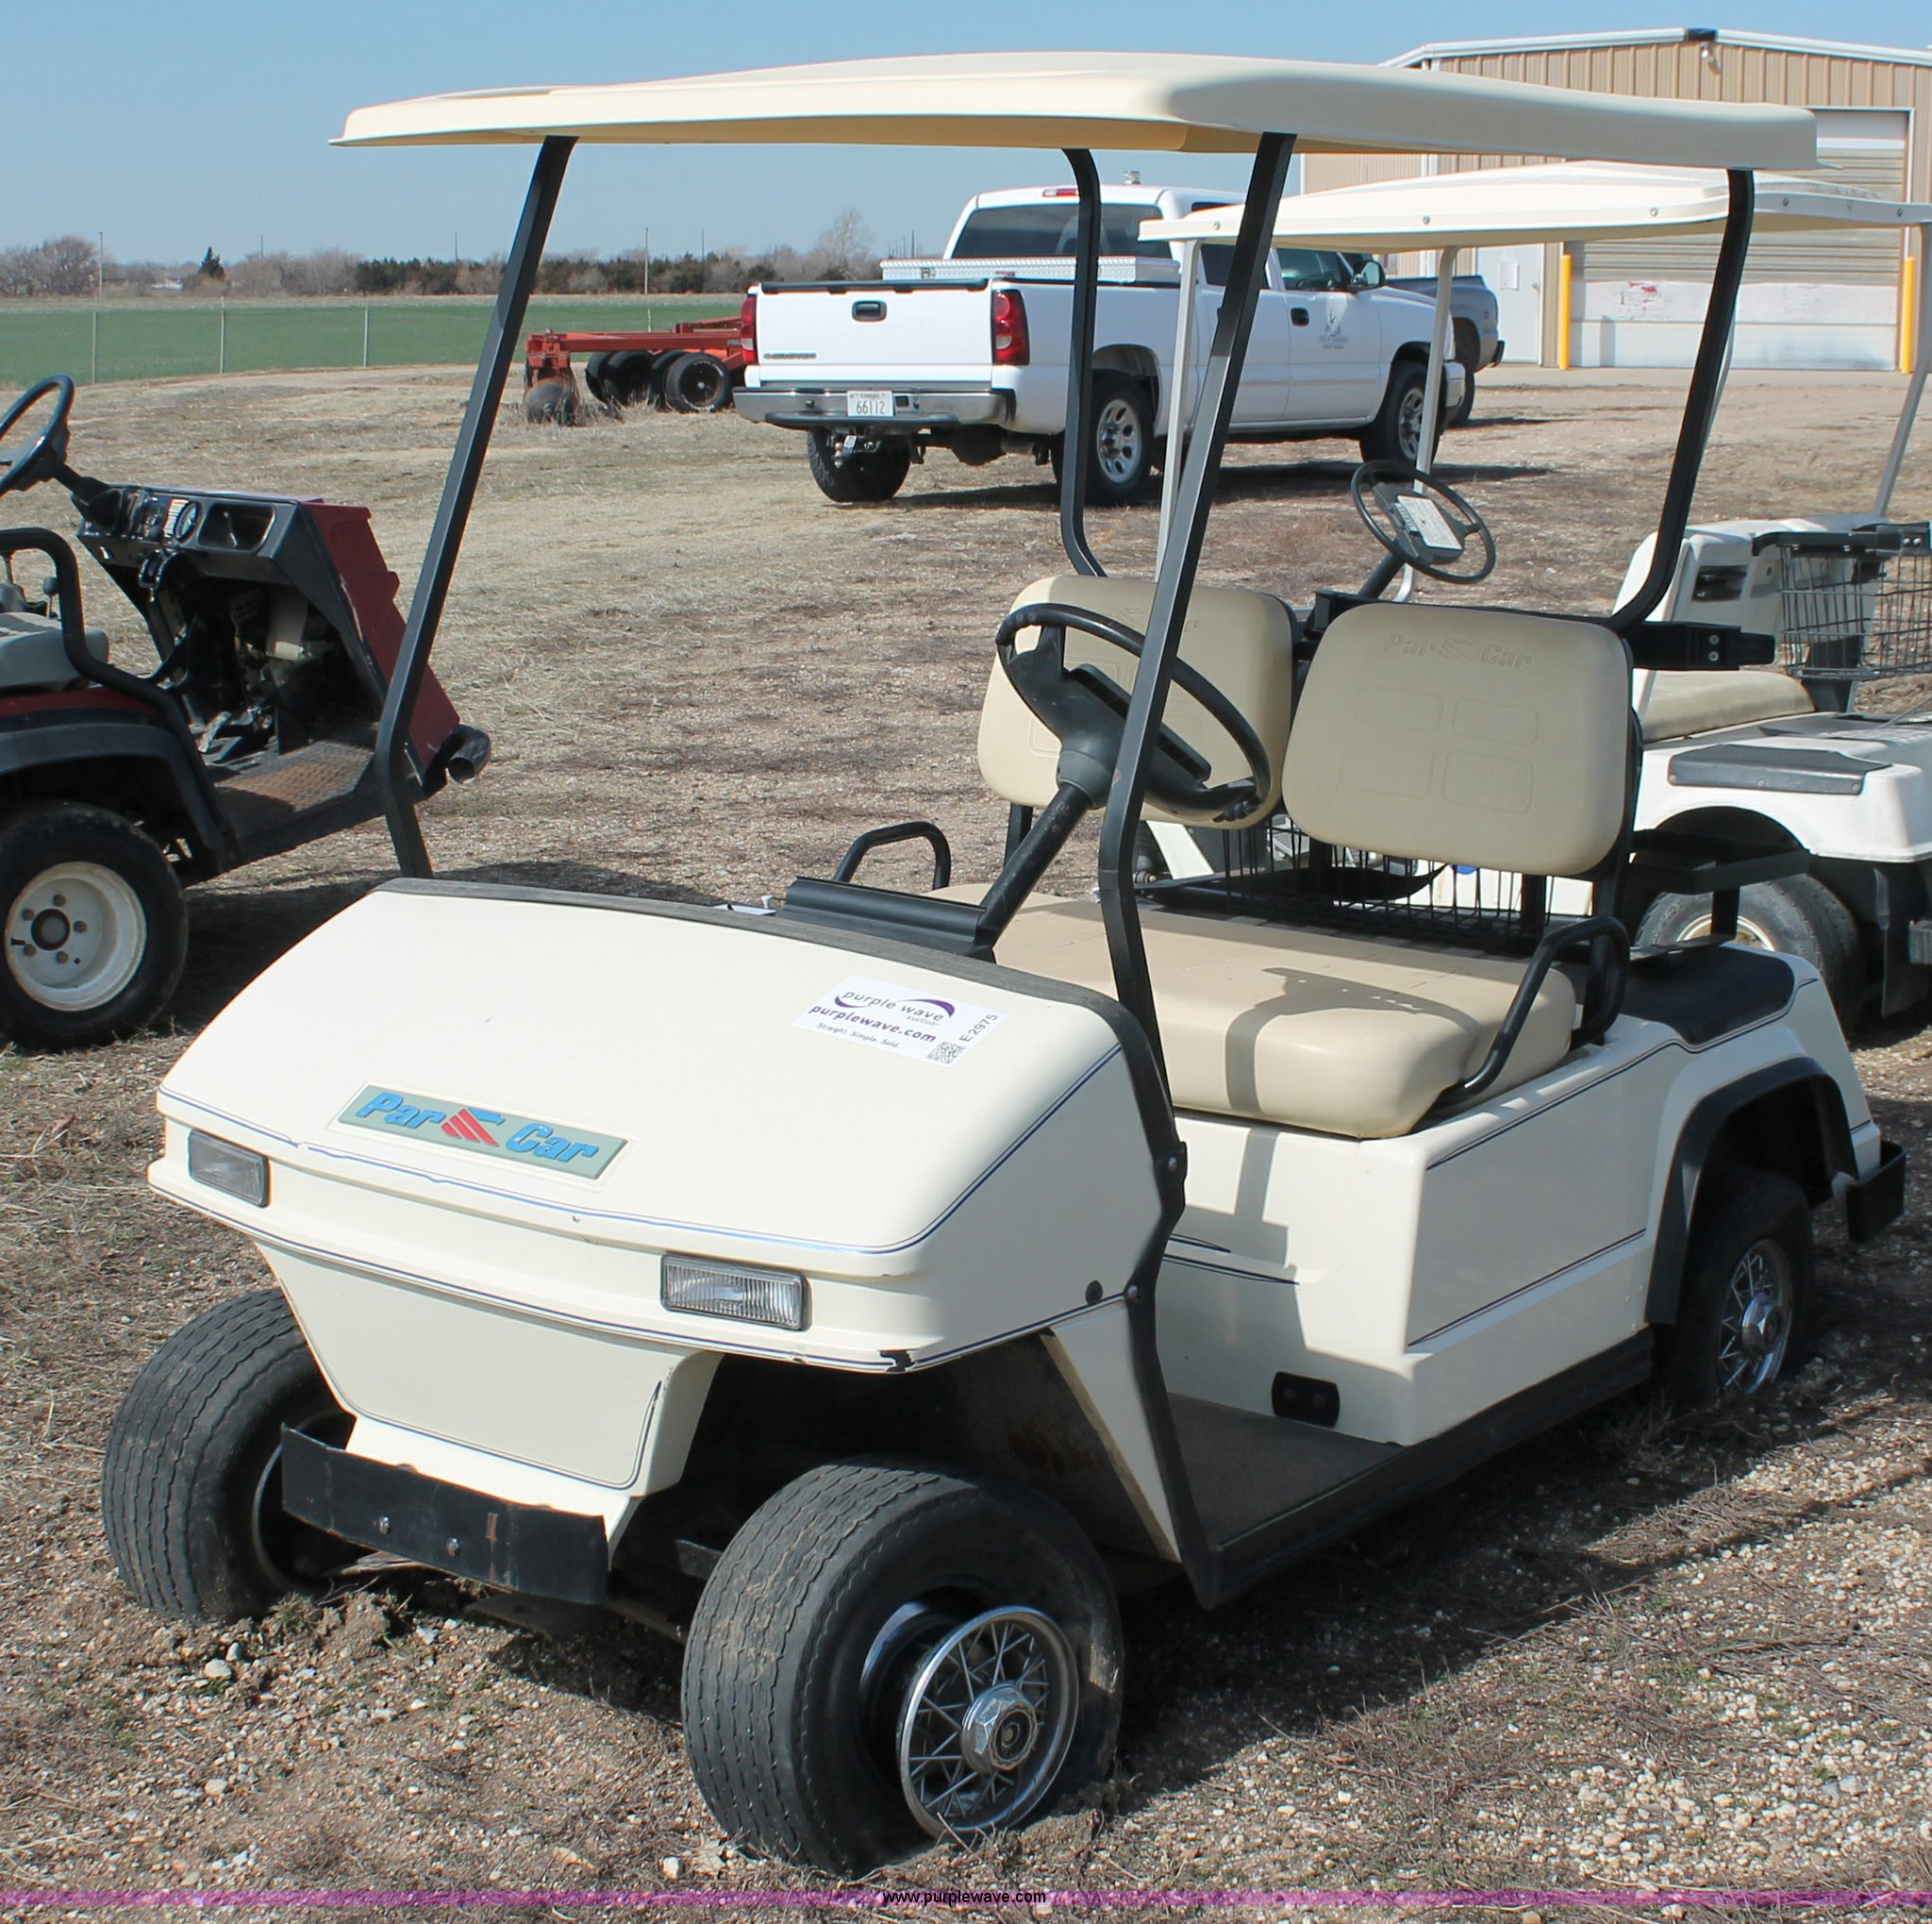 Par Car golf cart | Item E2975 | SOLD! Tuesday April 9 Gover... Beaver Golf Cart on cow golf cart, bears golf cart, bradley golf cart, hornet golf cart, pig golf cart, eagle golf cart, kodiak golf cart, ladybug golf cart, bobcat golf cart, pink flamingo golf cart, bandit golf cart, longhorn golf cart, denali golf cart, apache golf cart, mule golf cart,